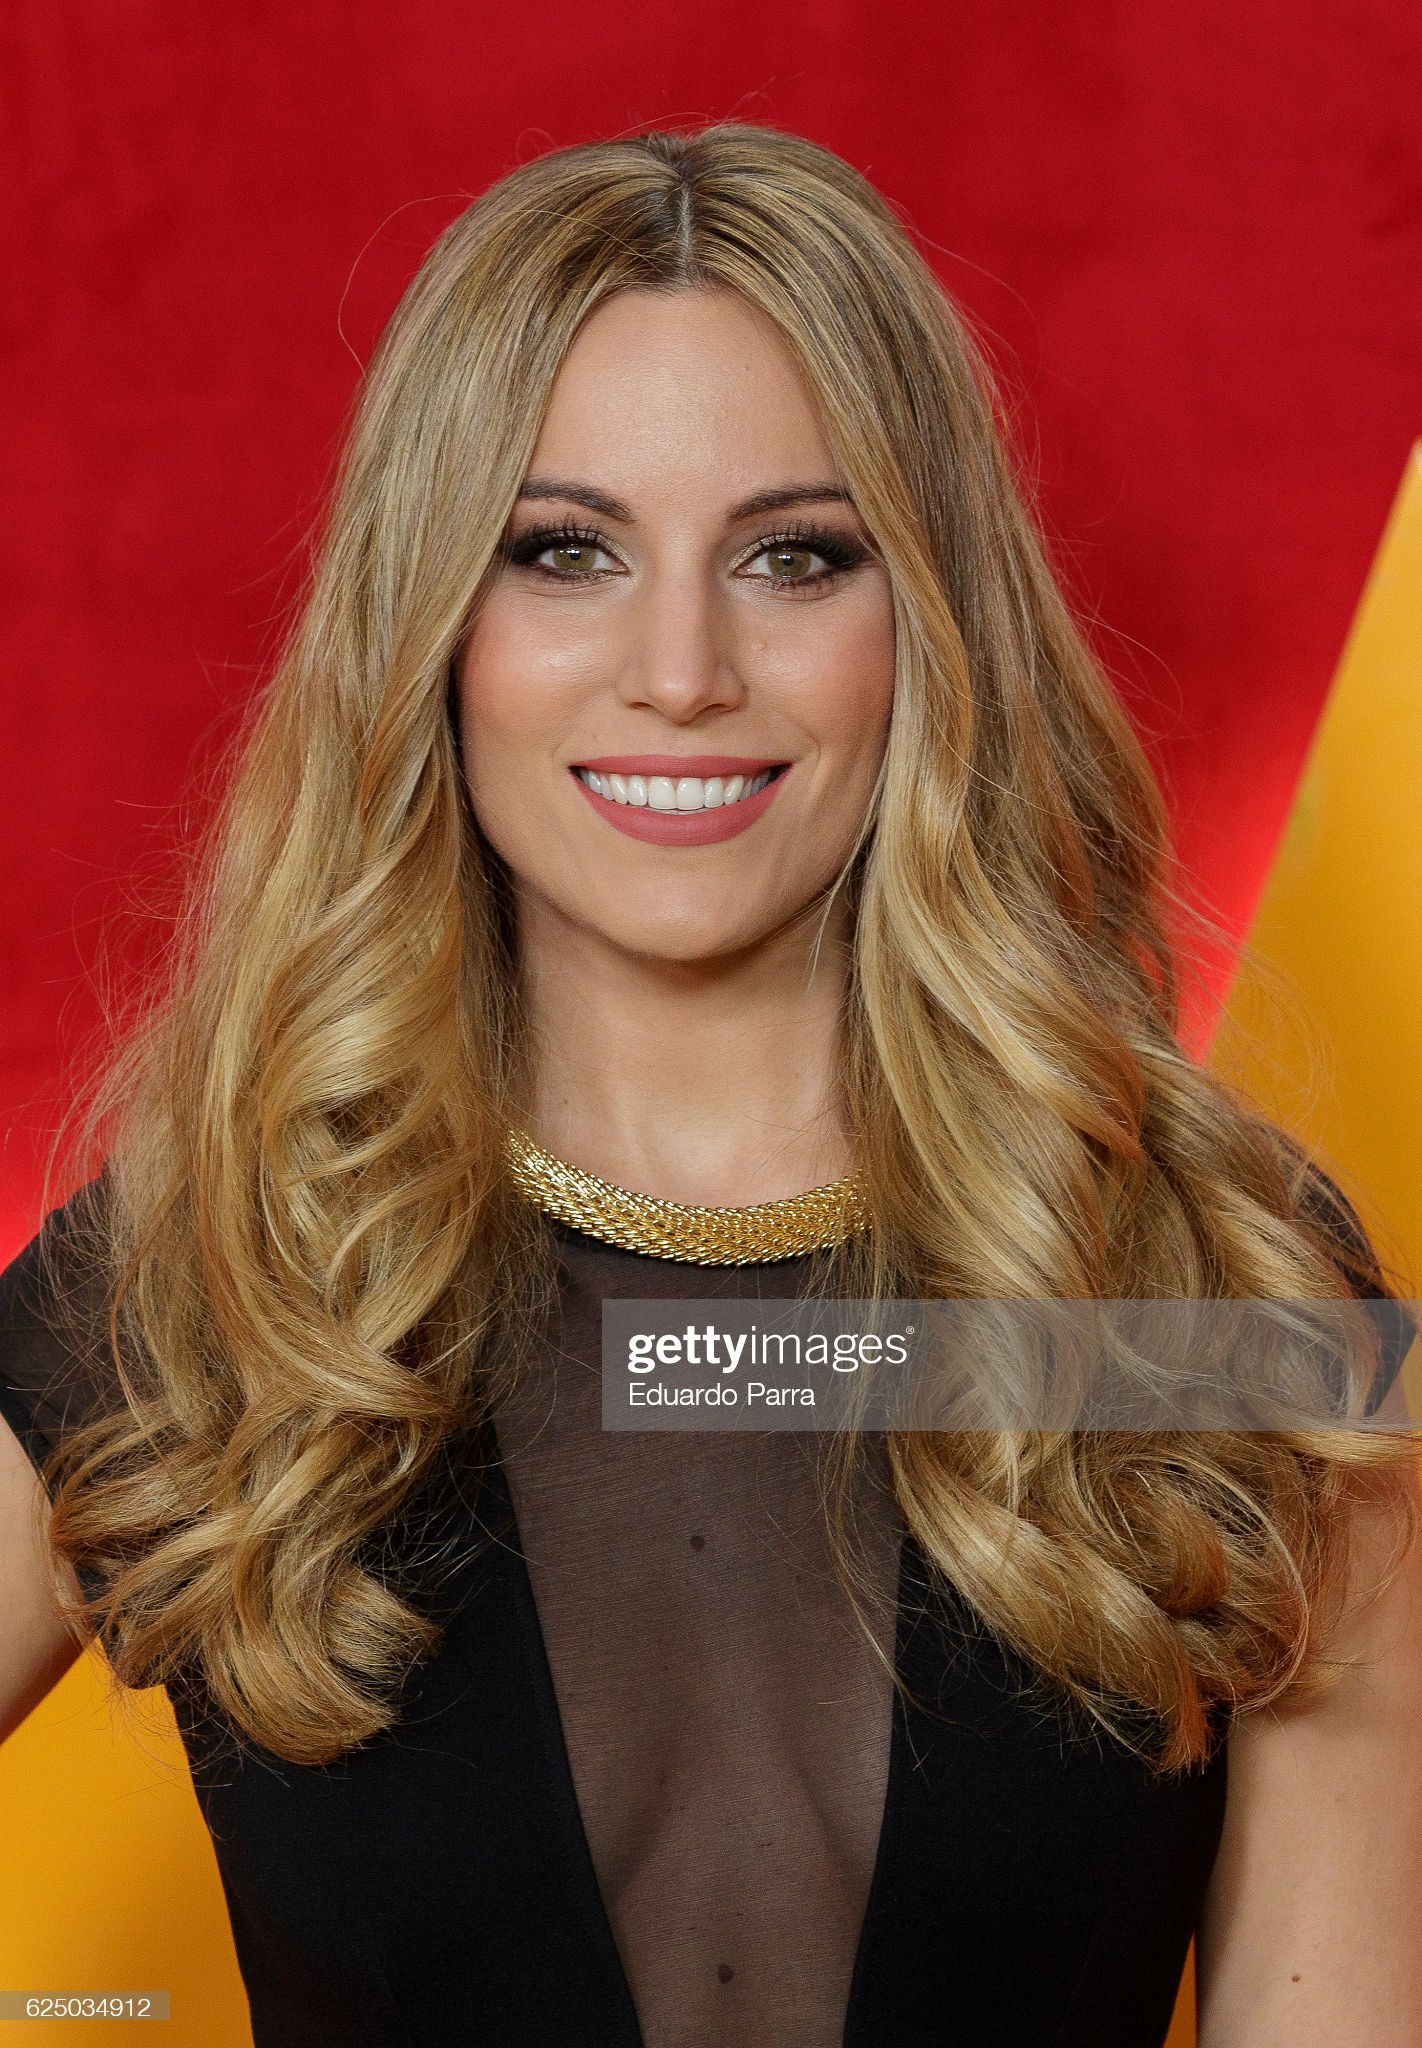 COLOR DE OJOS (clasificación y debate de personas famosas) Singer-edurne-garcia-attends-the-got-talent-tv-show-photocall-at-picture-id625034912?s=2048x2048